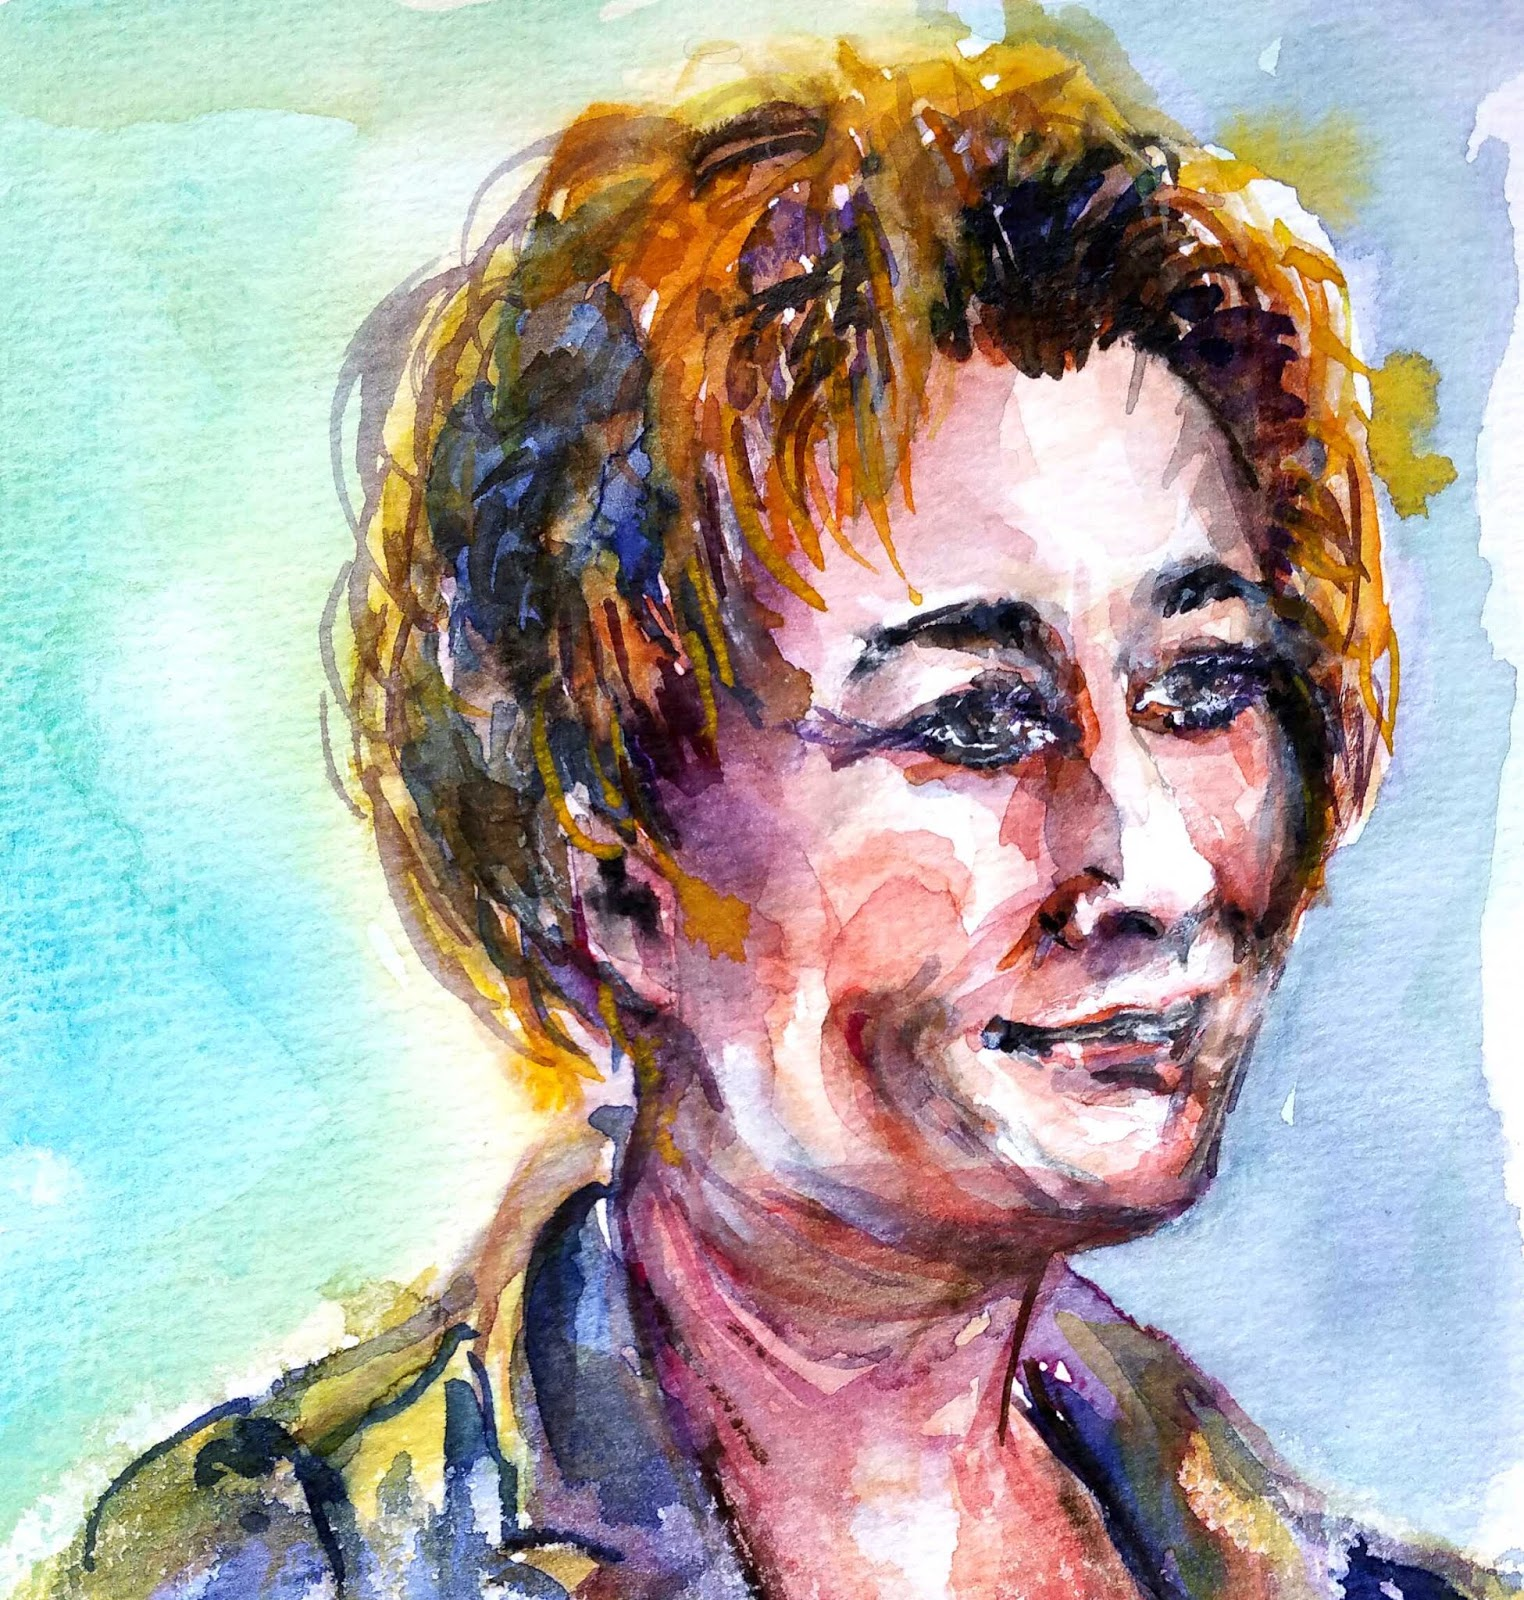 Bettina Malt Portrait In Direct Watercolour Die Frisur Sitzt